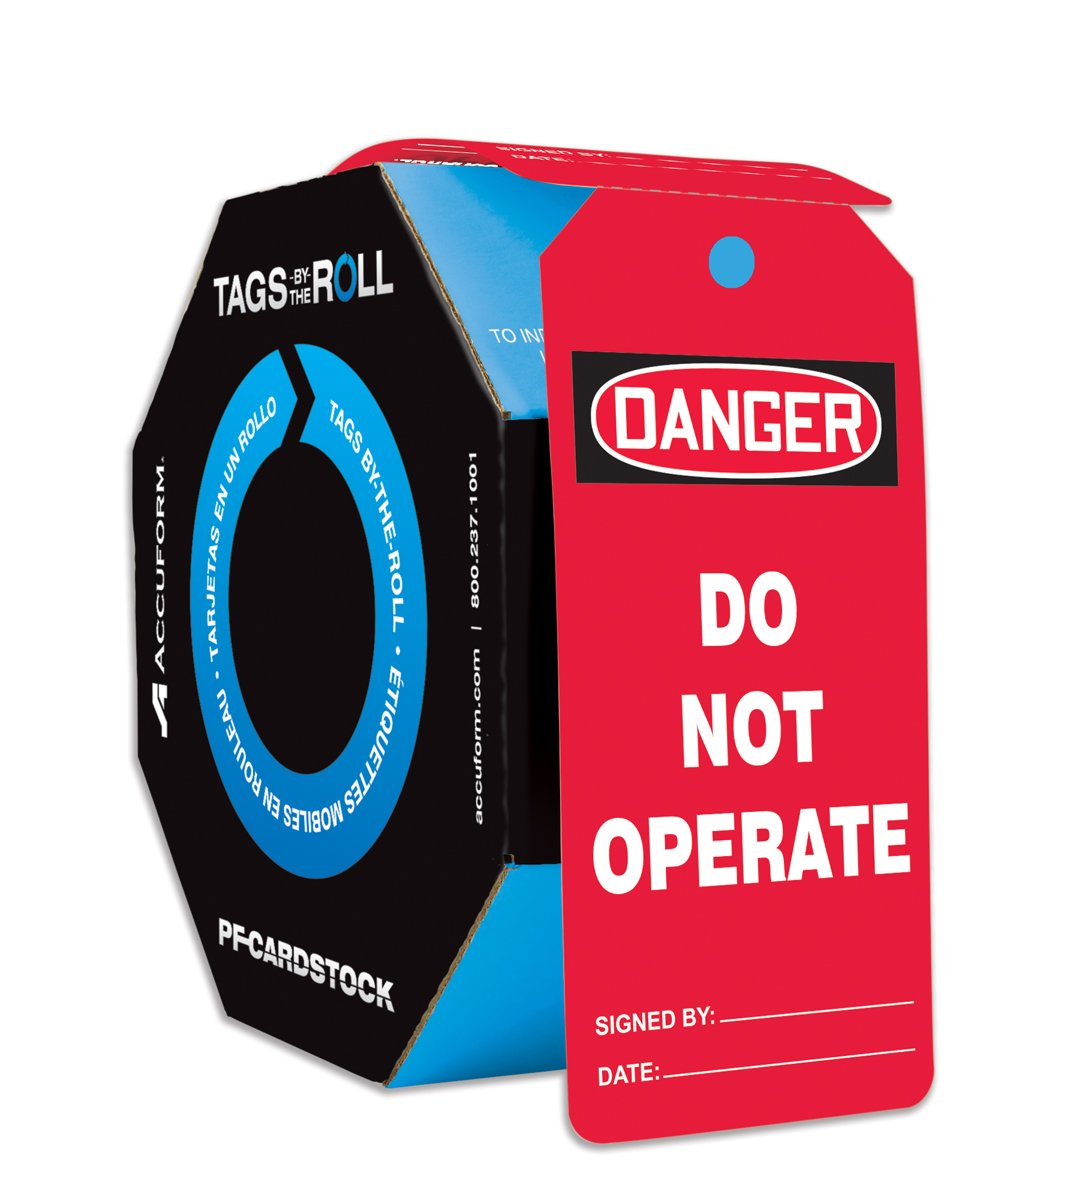 Accuform TAR142 Tags by-The-Roll General Safety Tags, Legend''Danger DO NOT Operate'', 6.25'' Length x 3'' Width x 0.010'' Thickness, PF-Cardstock, Black/White on Red (Pack of 250) by Accuform